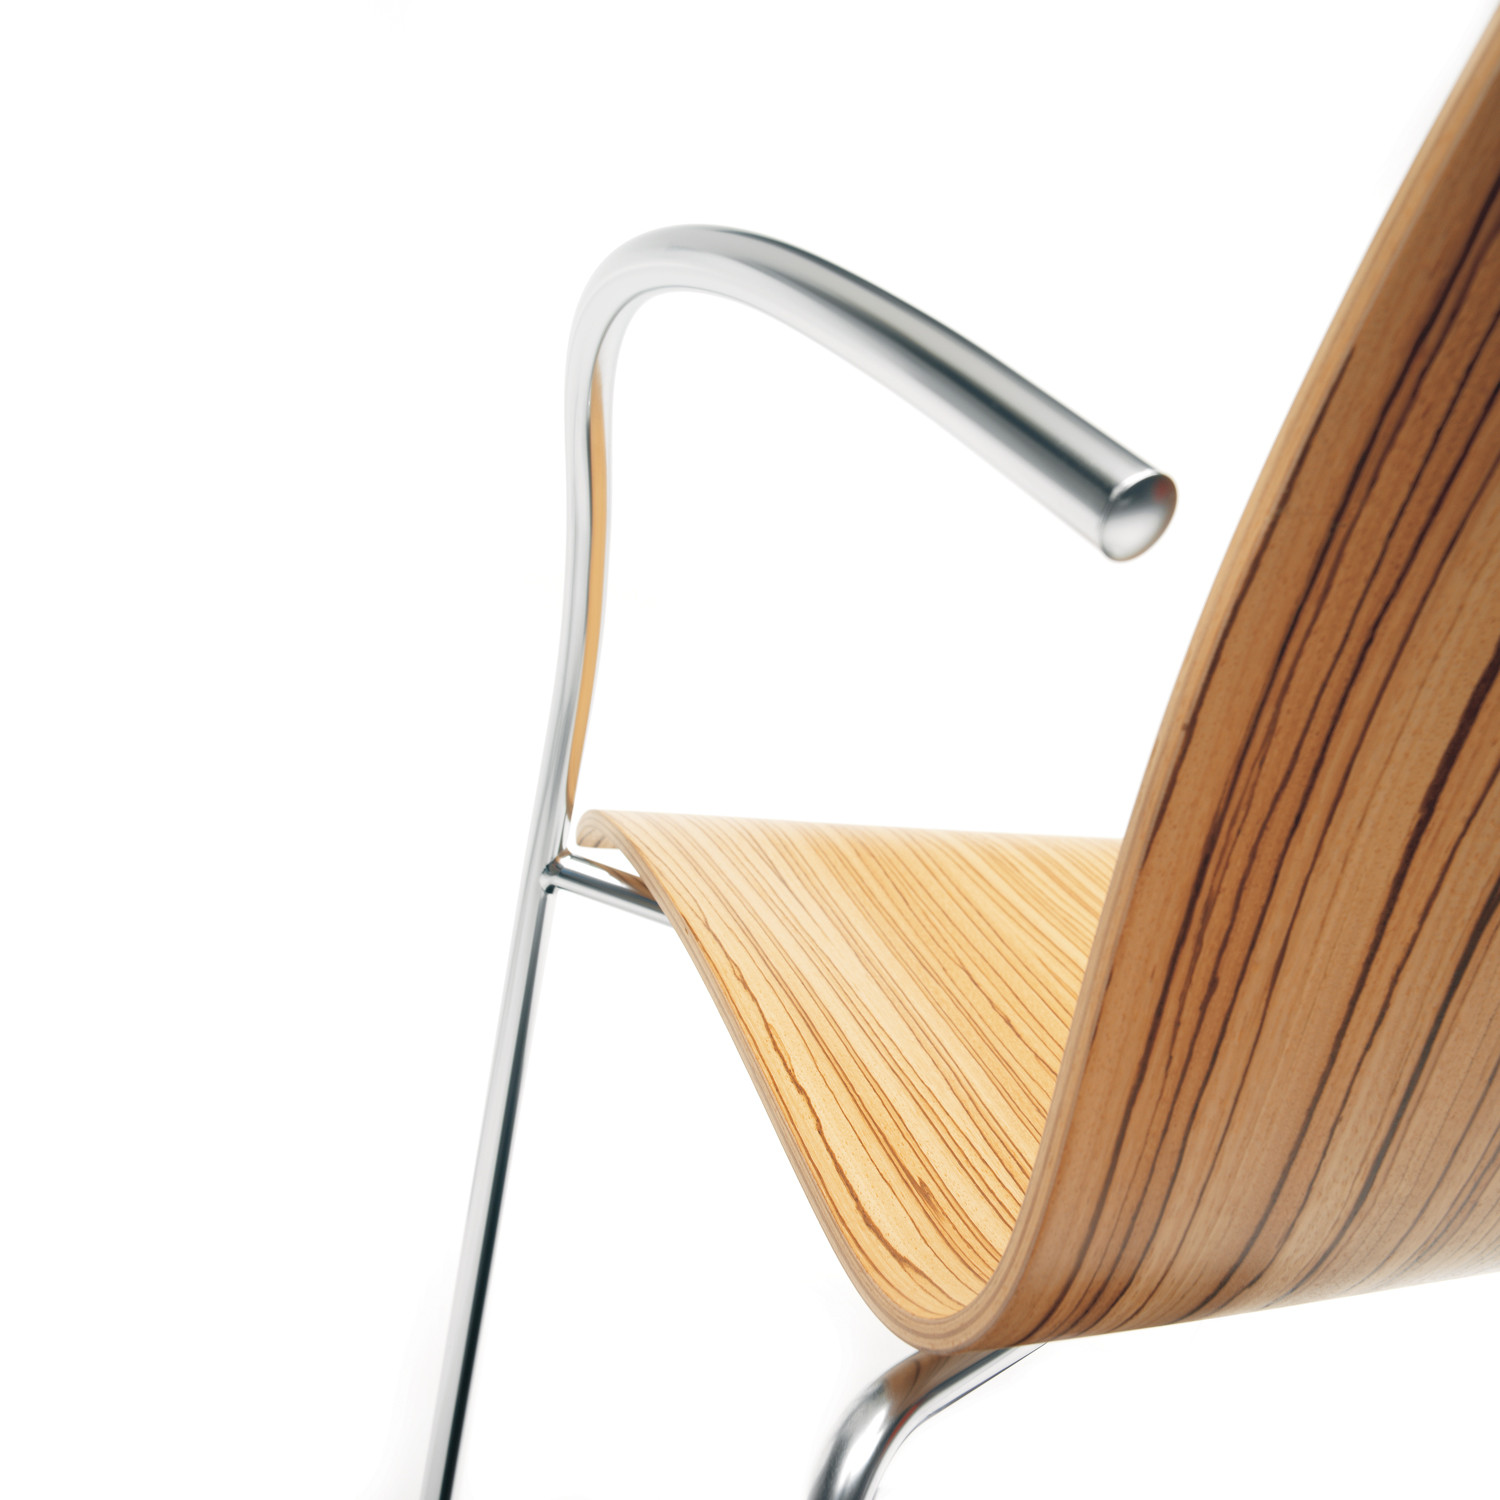 1100 Trio Chair arm detail